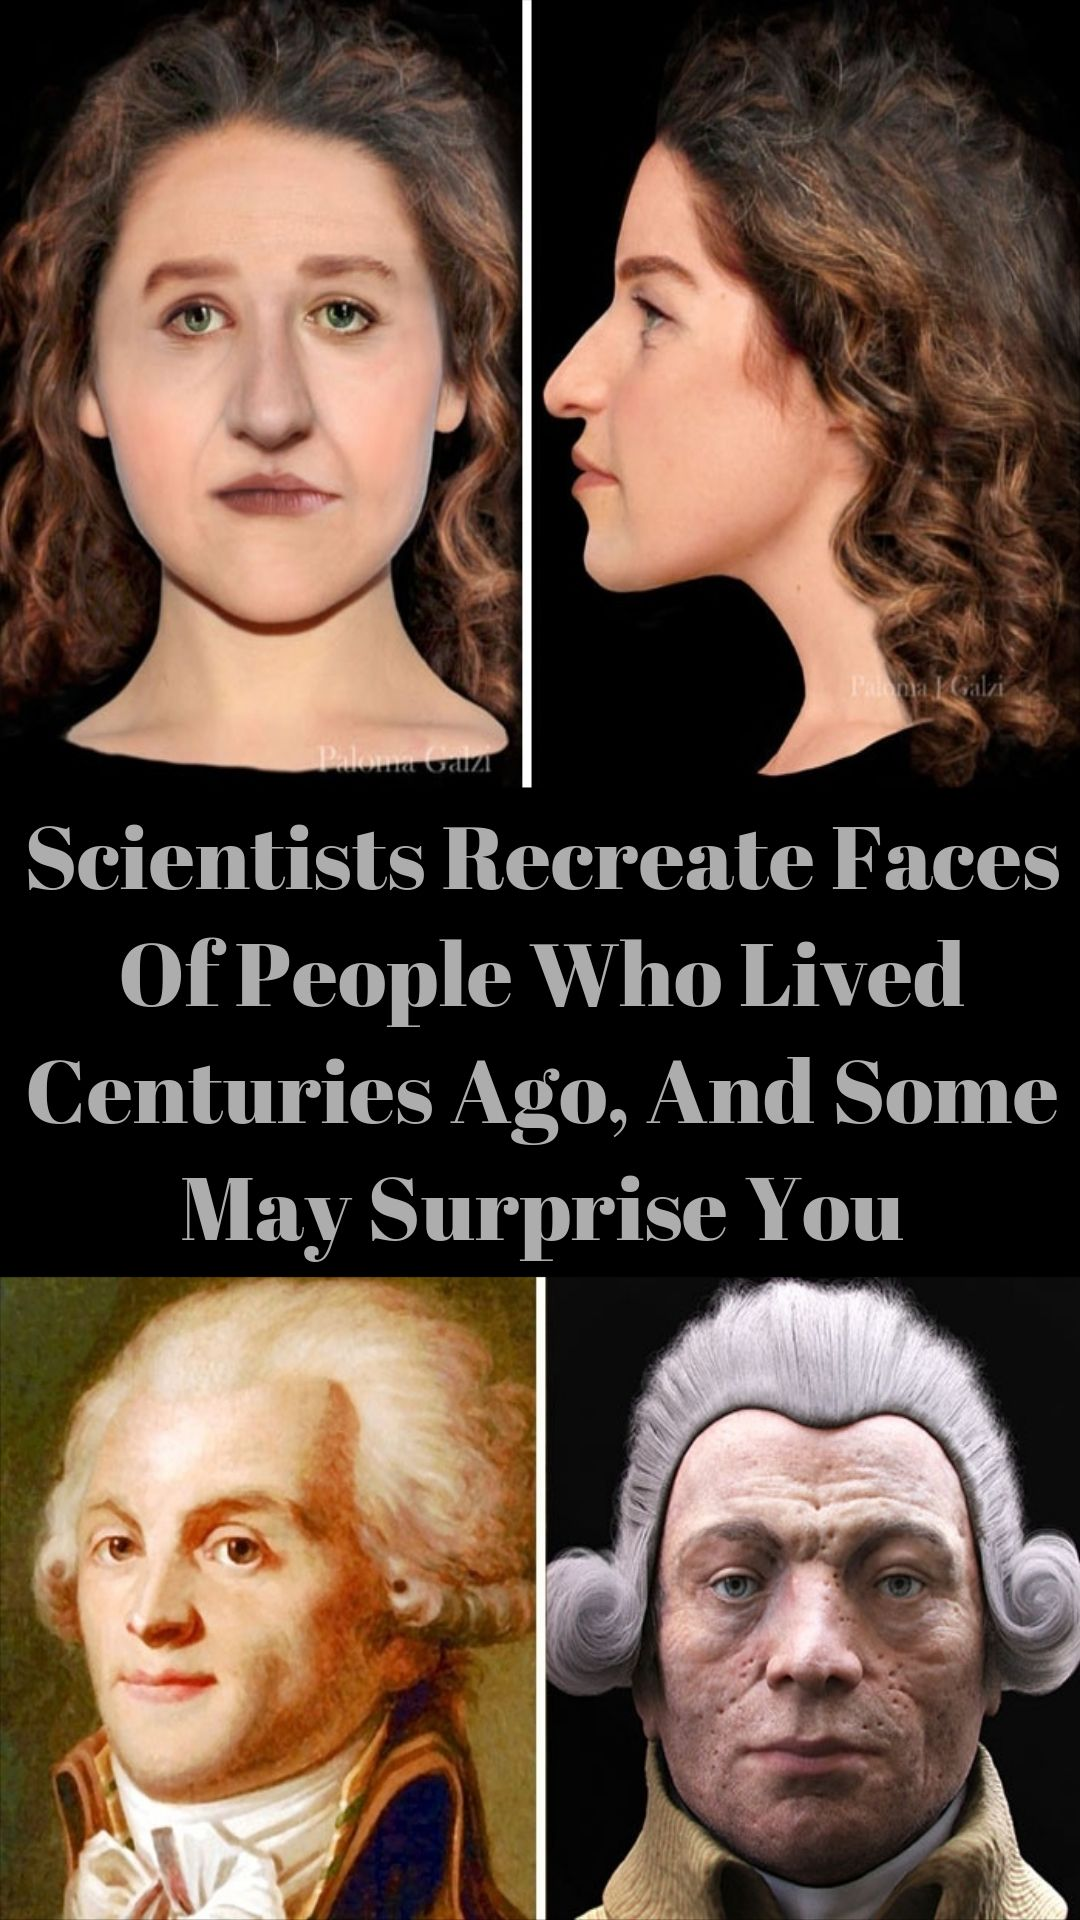 Scientists Recreate Faces Of People Who Lived Centuries Ago, And Some May Surprise You